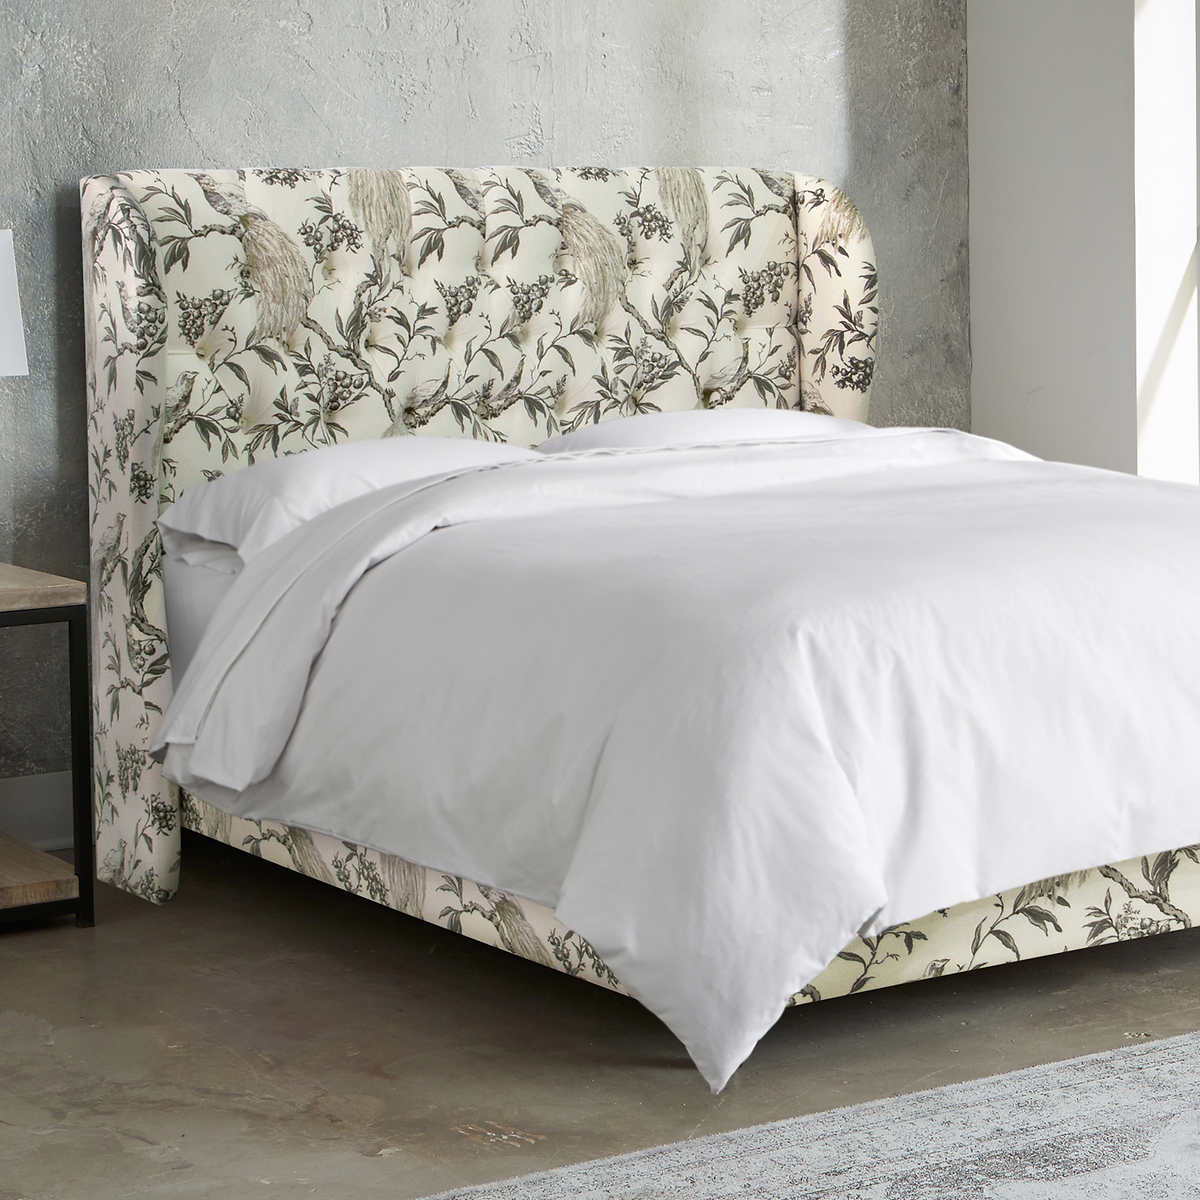 allegro tufted upholstered king bed in roberta winter